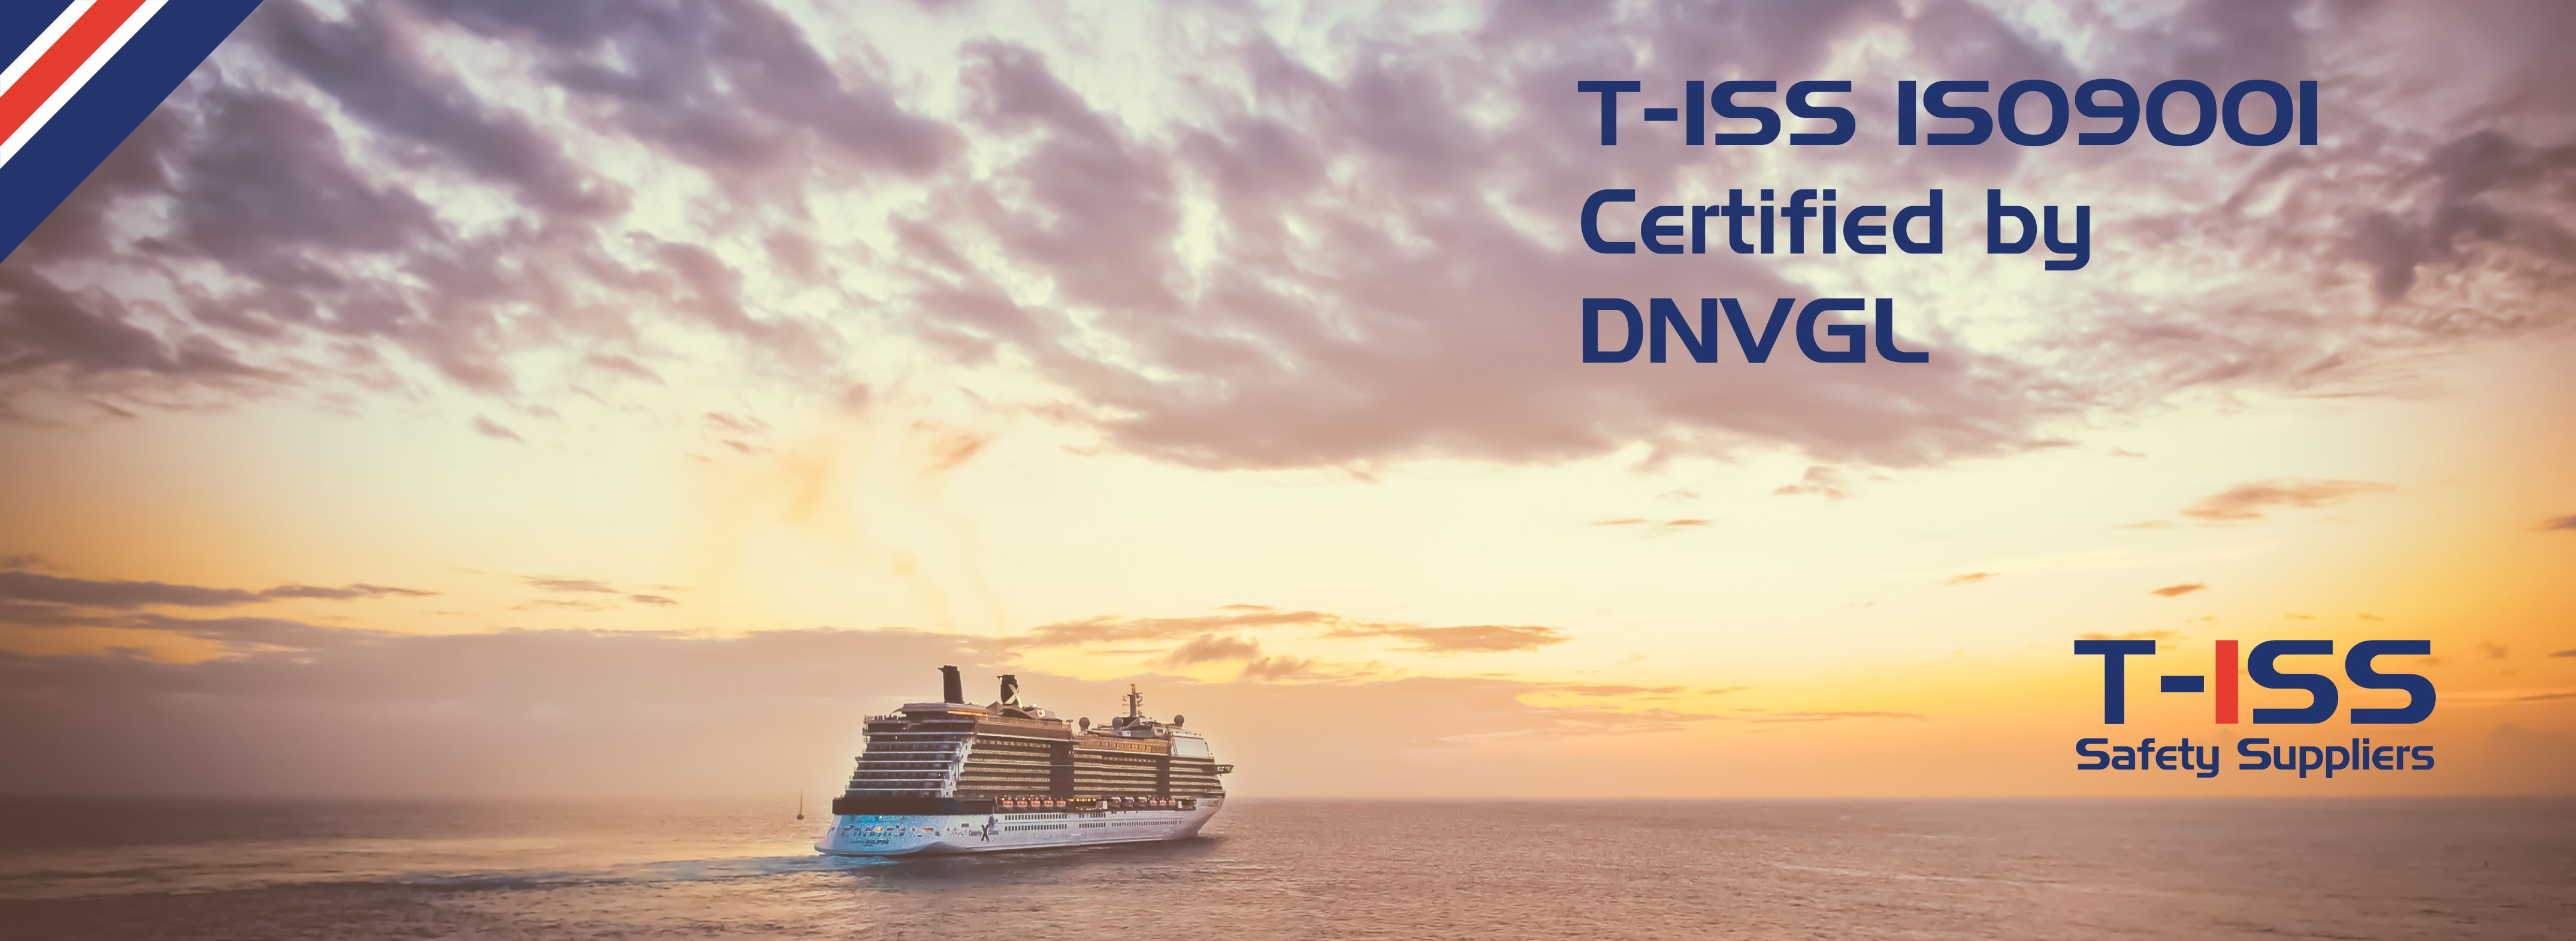 T-ISS ISO9001 Certified by DNVGL